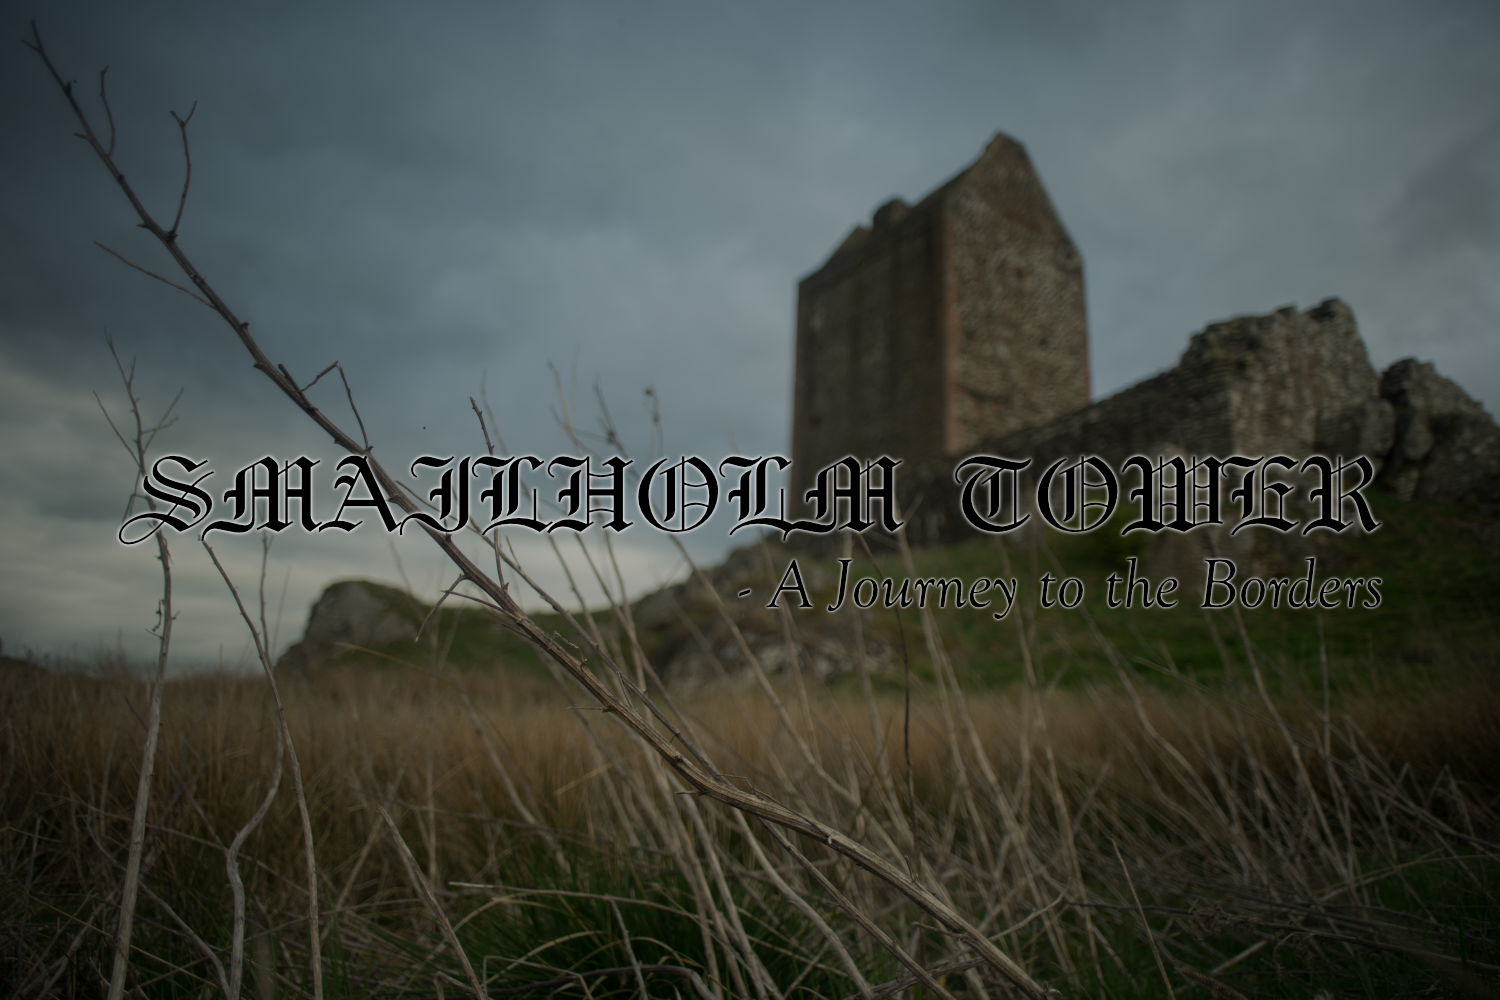 Smailholm_Tower_Blog_Header_Scott_Wanstall